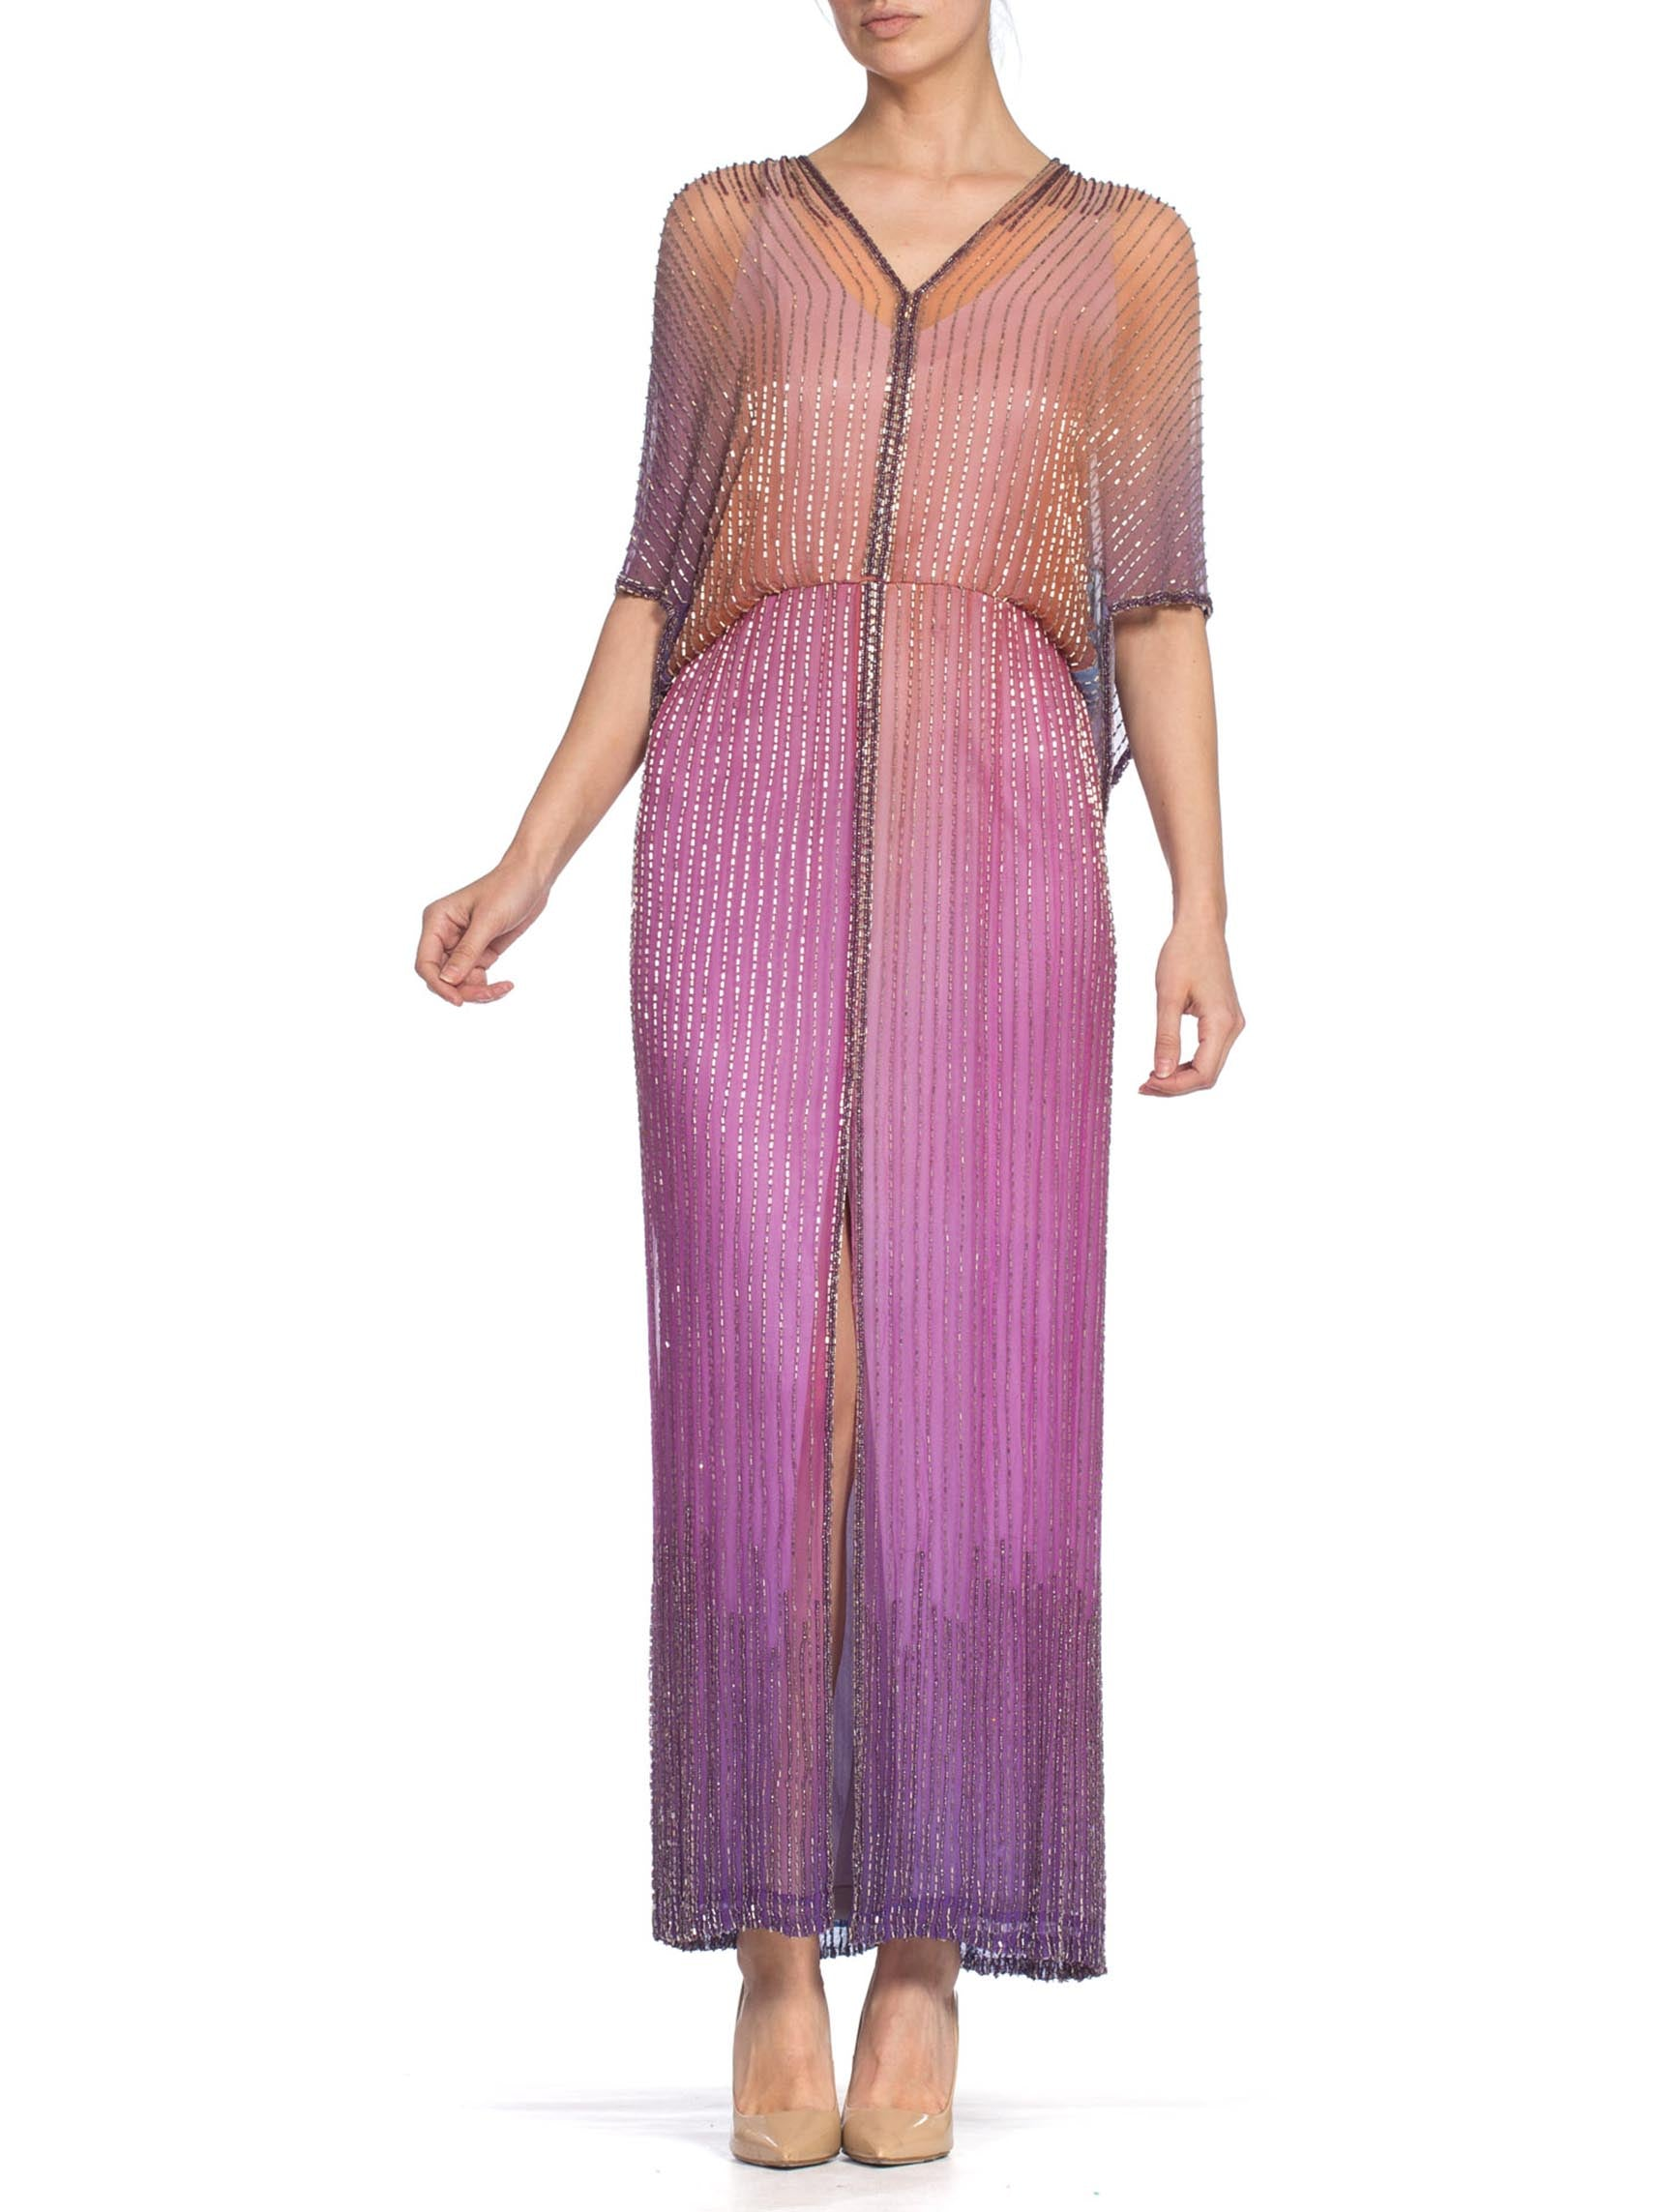 1970S HALSTON Style Pink & Purple Silk Chiffon Ombre Tie-Dyed Gown Covered In Bugle Beads